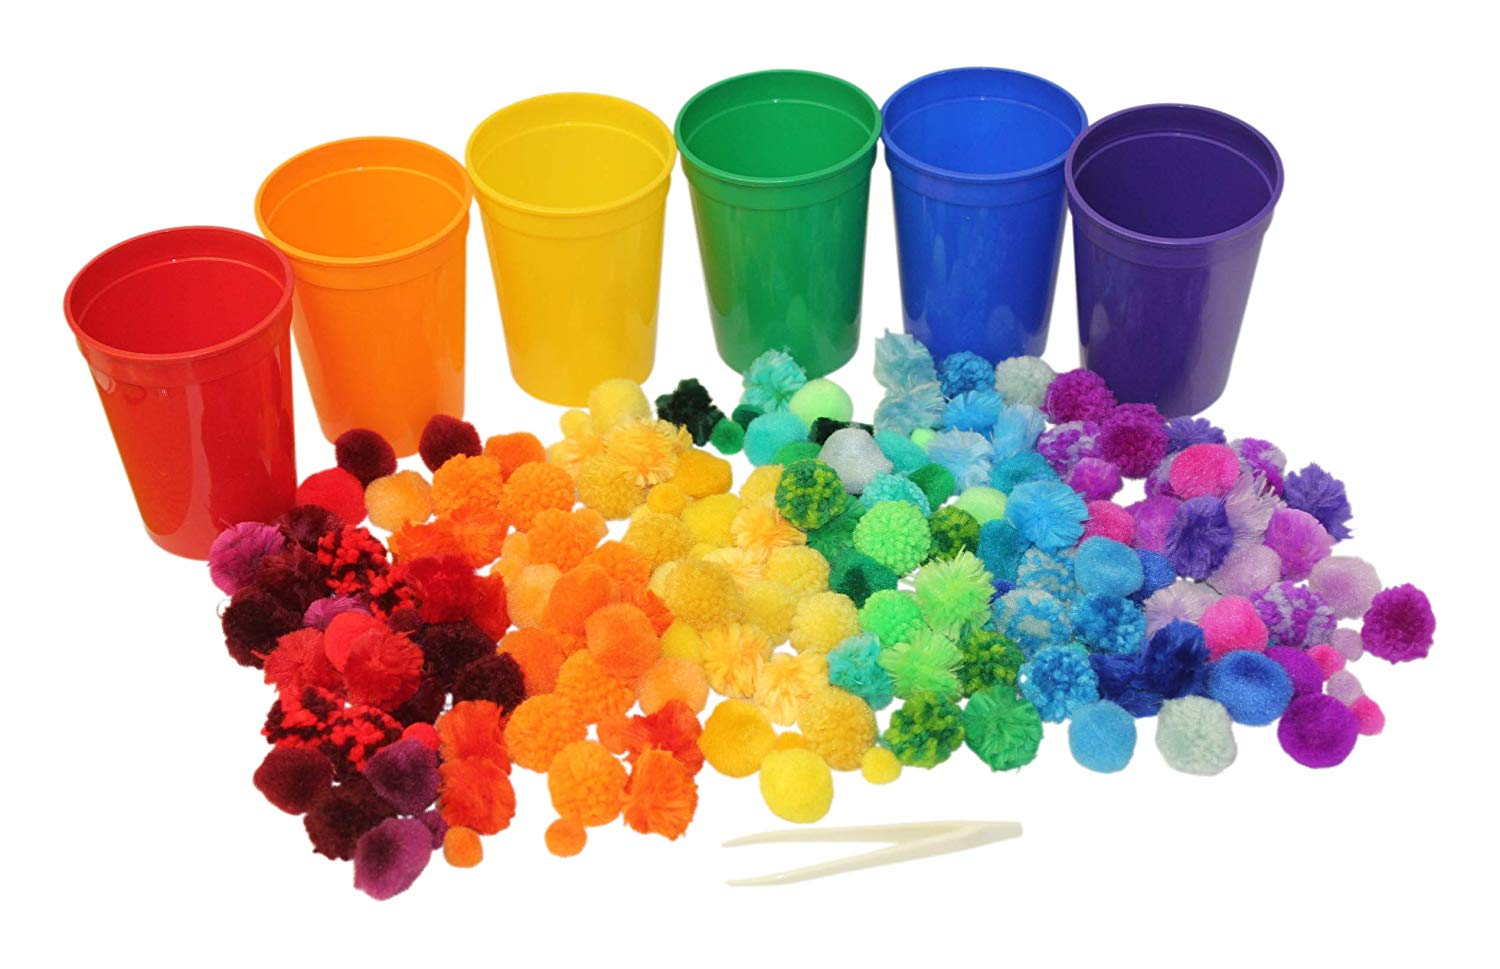 Color Sorting Cups and Pom Poms to Sort Color Scale Variations for Preschool and Early Childhood Education... by